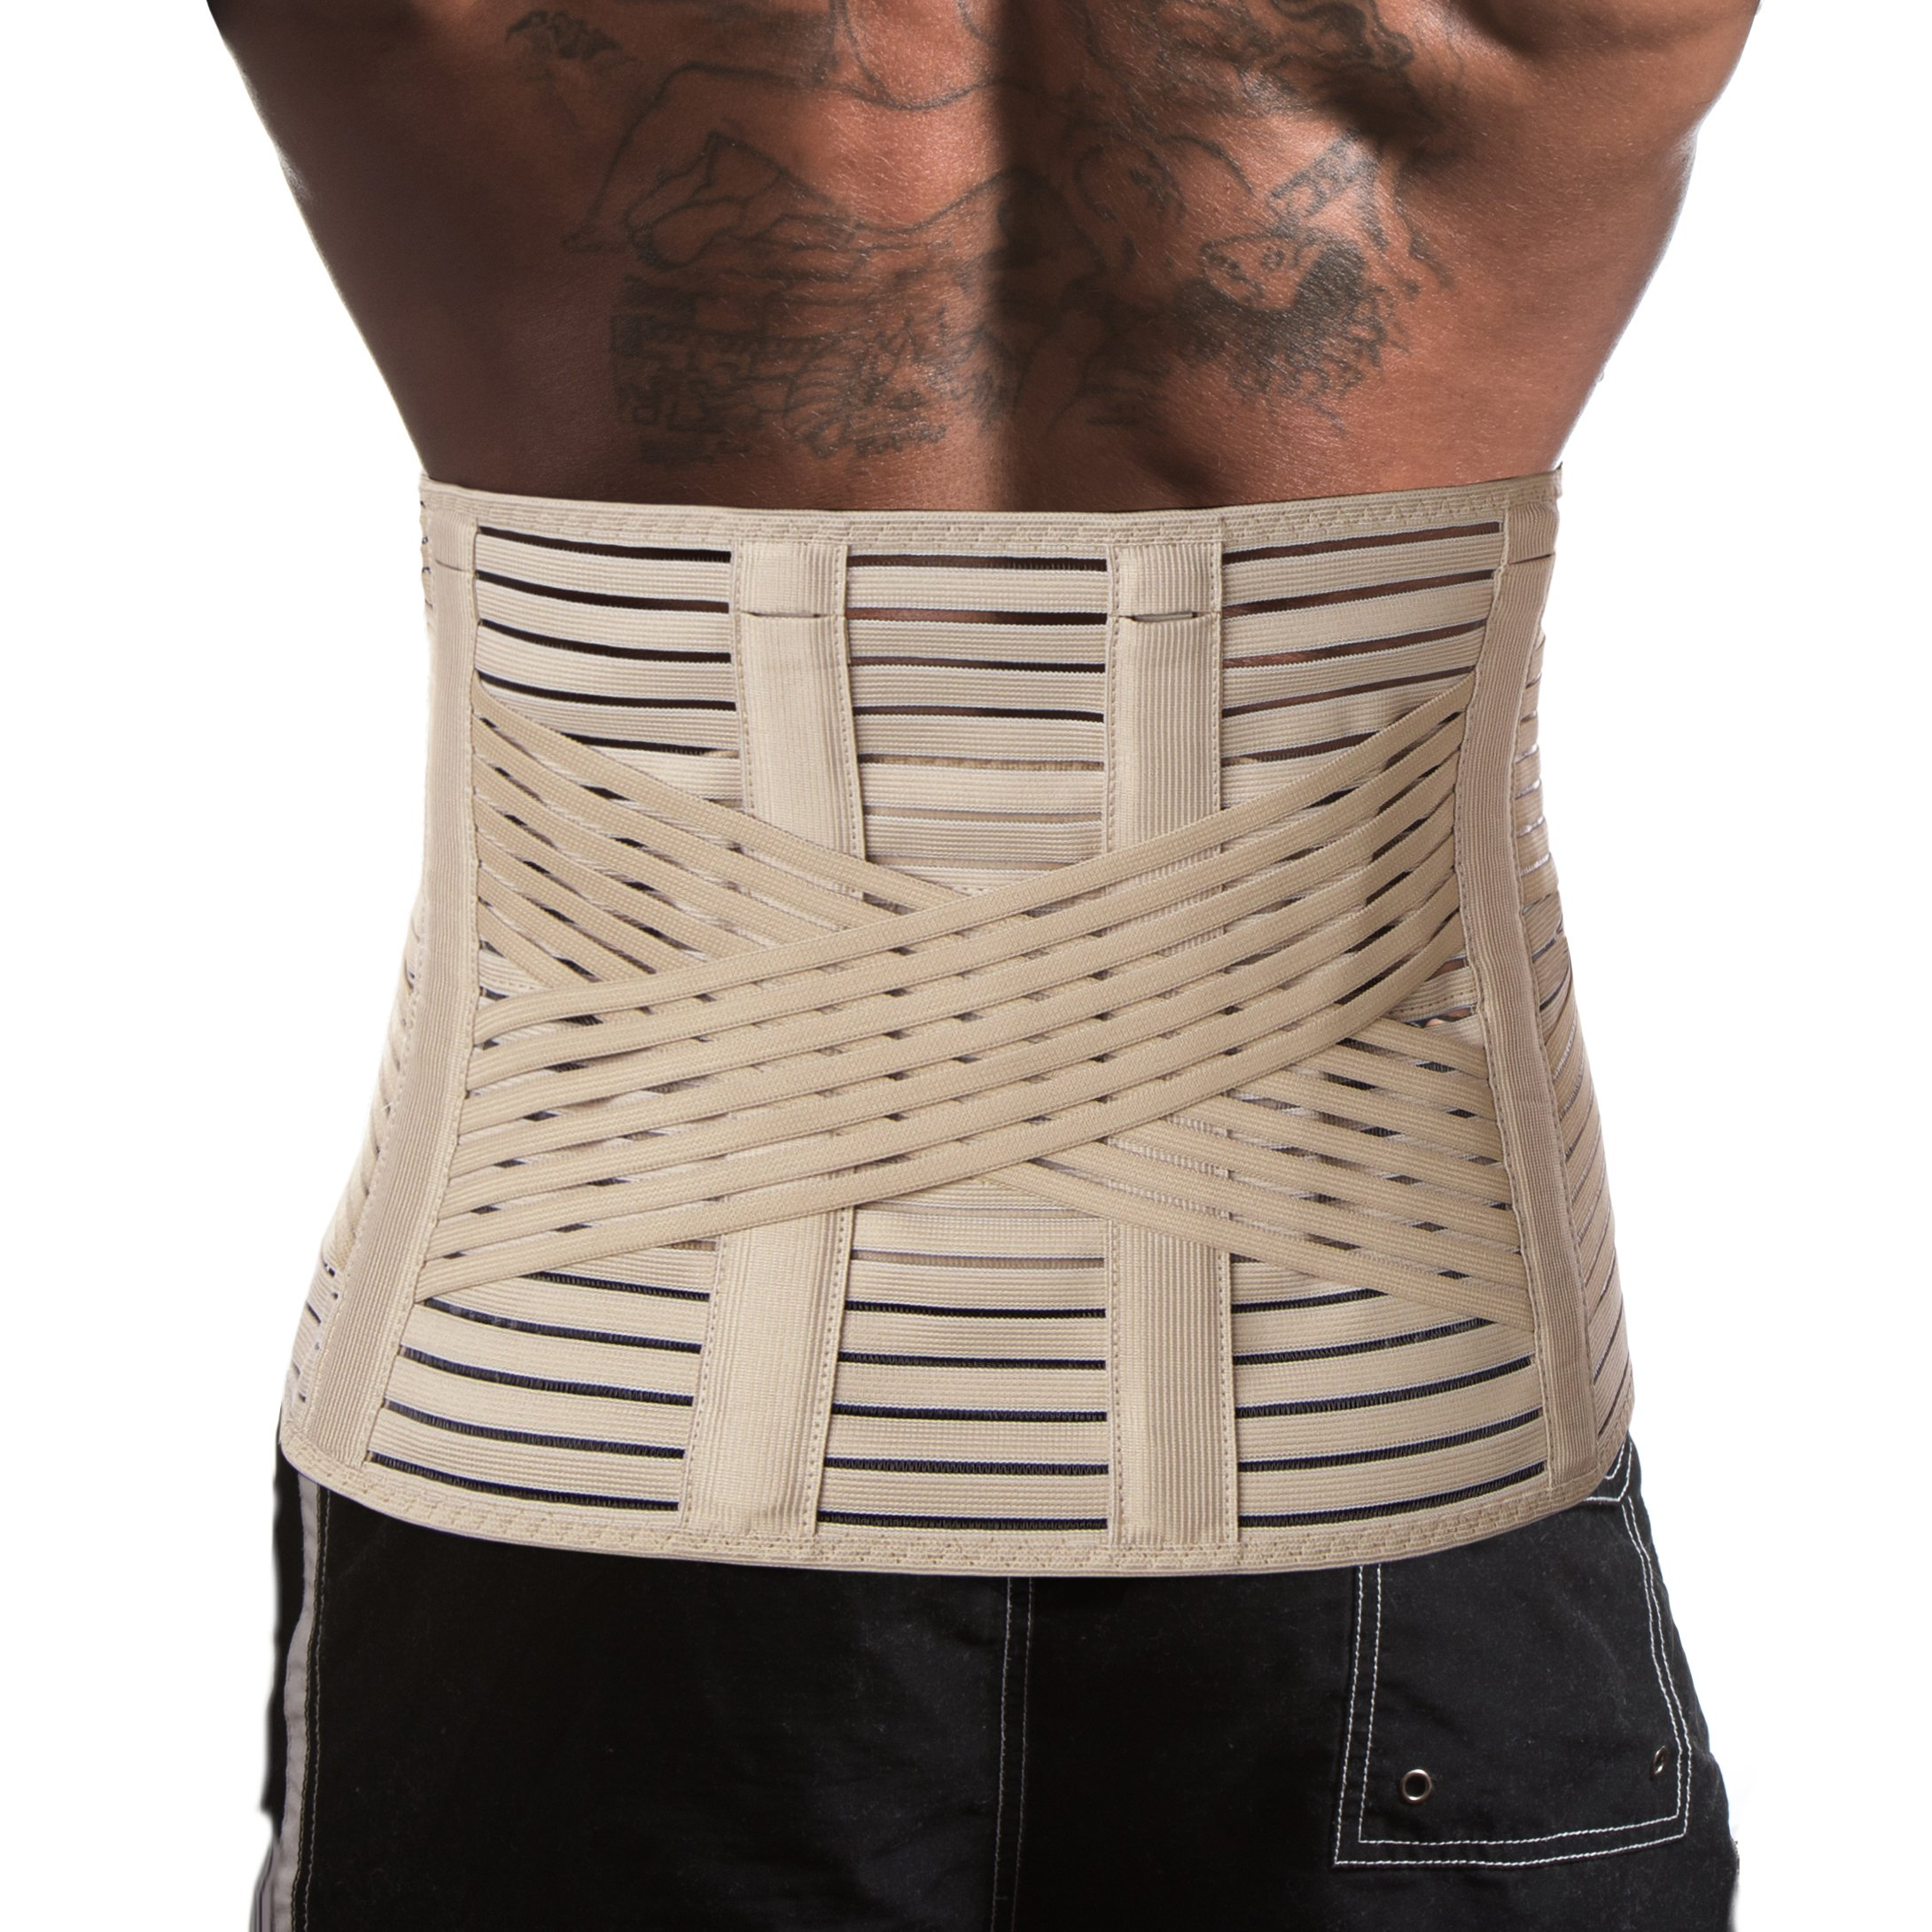 UFEELGOOD Lower Back Brace Lumbar Support Belt - Pain Relief and Correct Posture - X-Small, Waist/Belly 29½'' - 33½'' Beige